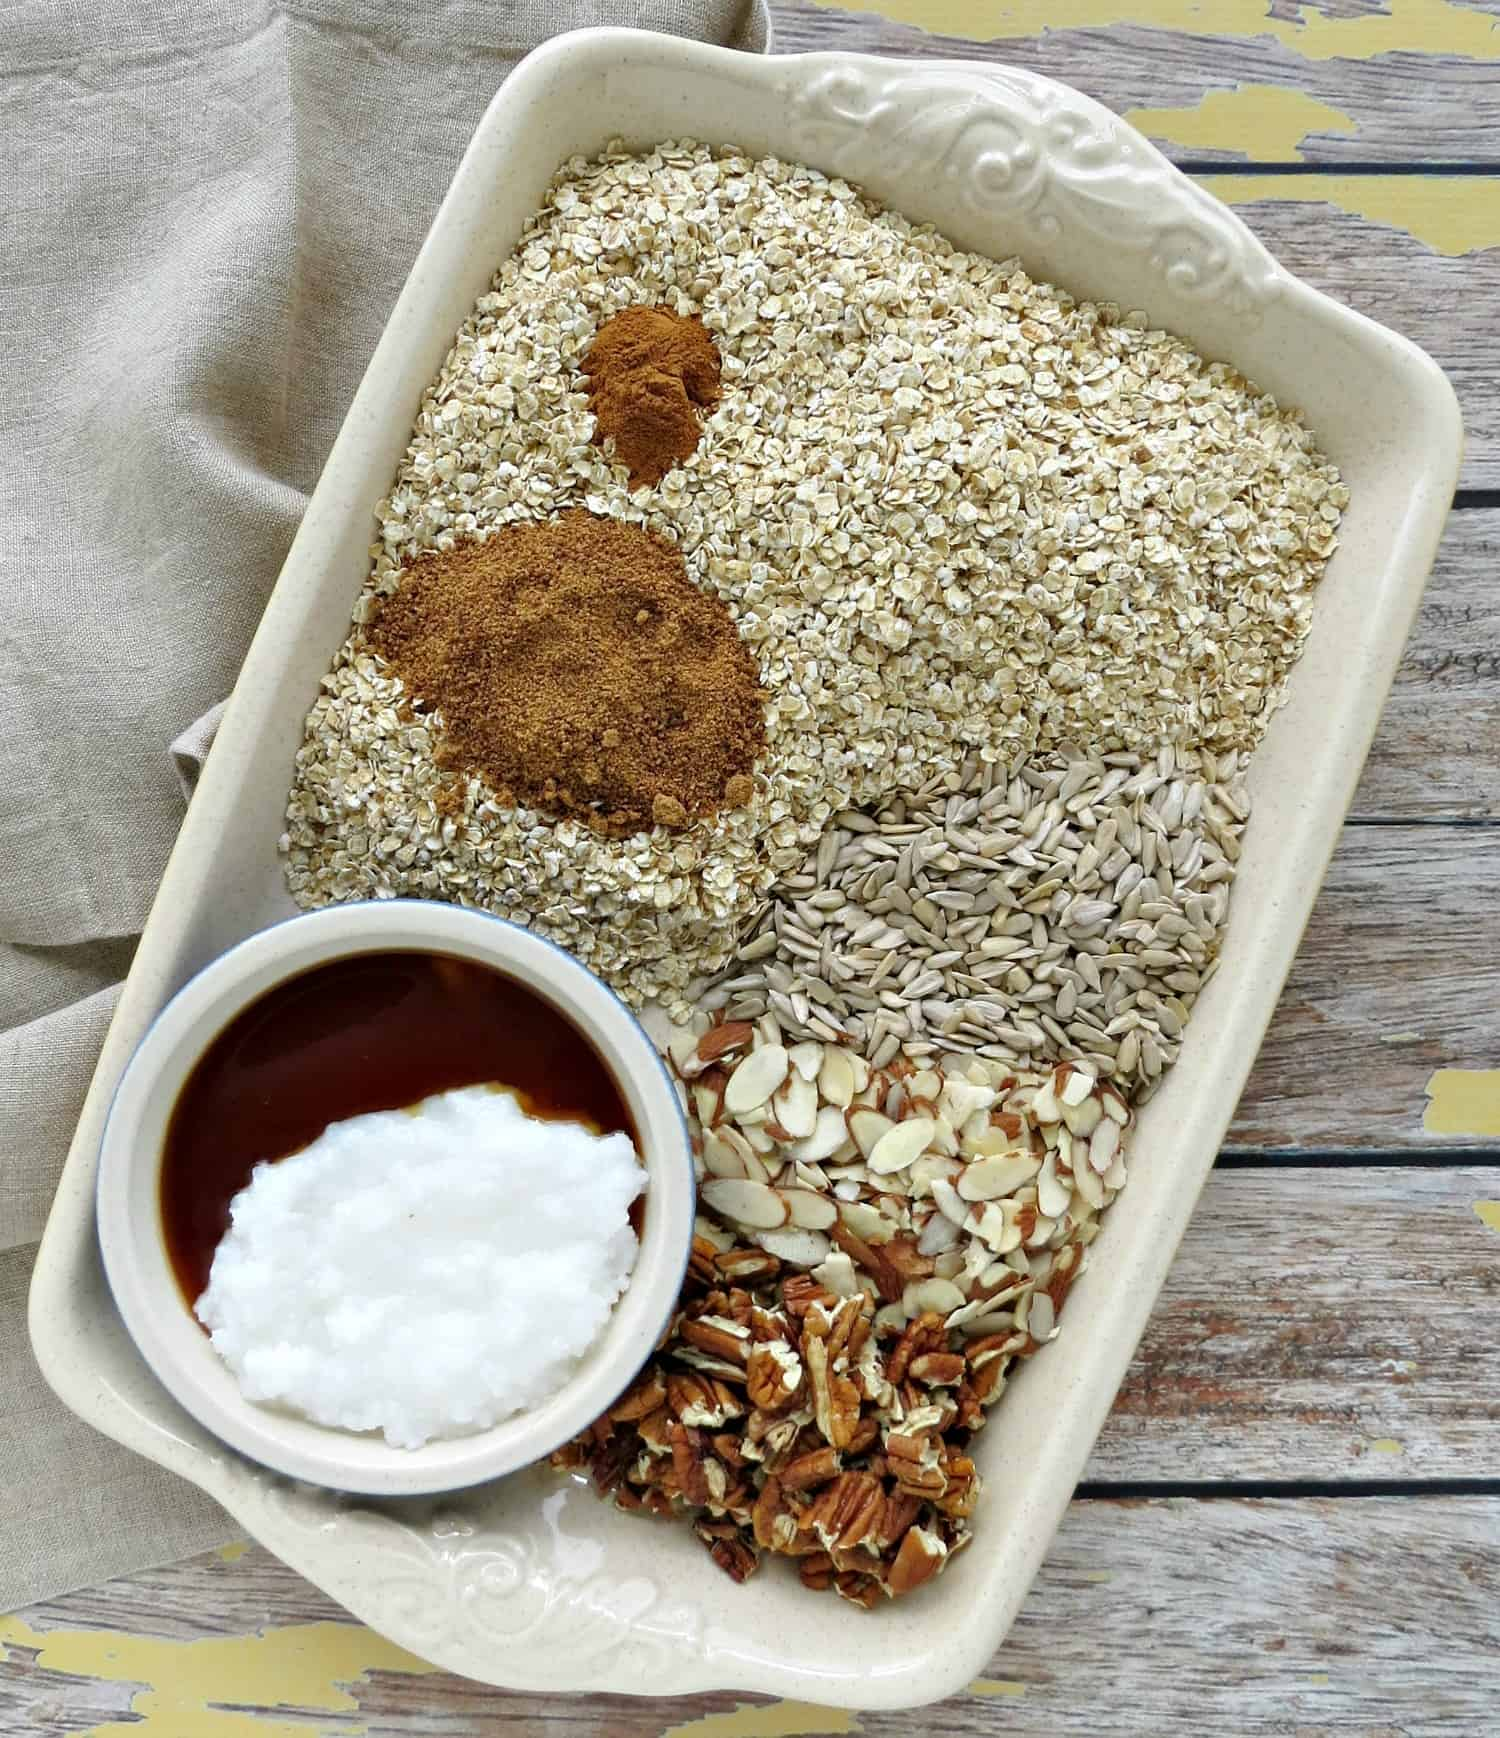 Nutty Homemade Granola Ingredients